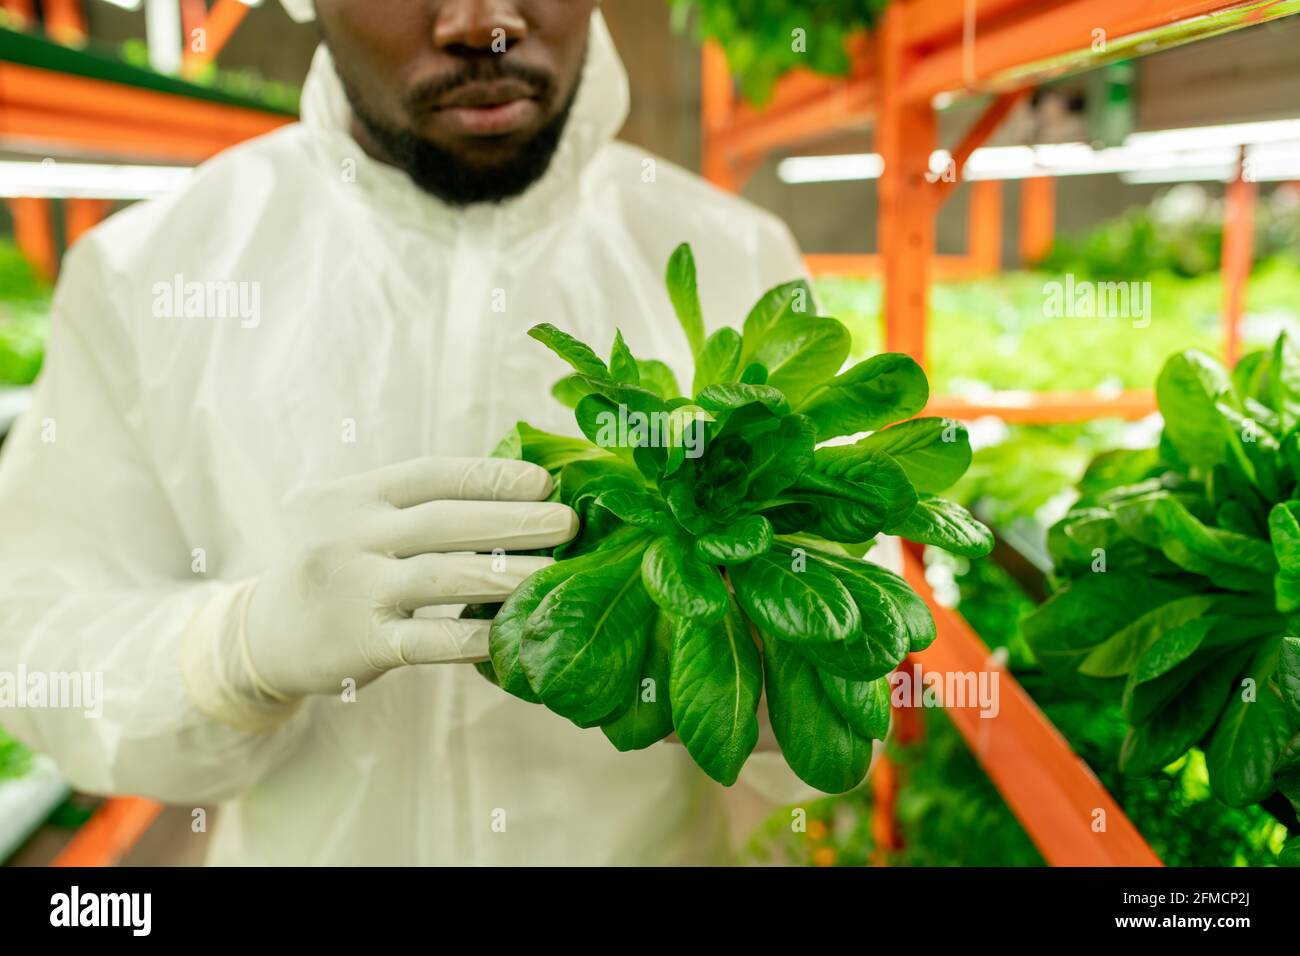 Close-up of black agricultural engineer in gloves holding lettuce leaves and inspecting plant at greenhouse Stock Photo